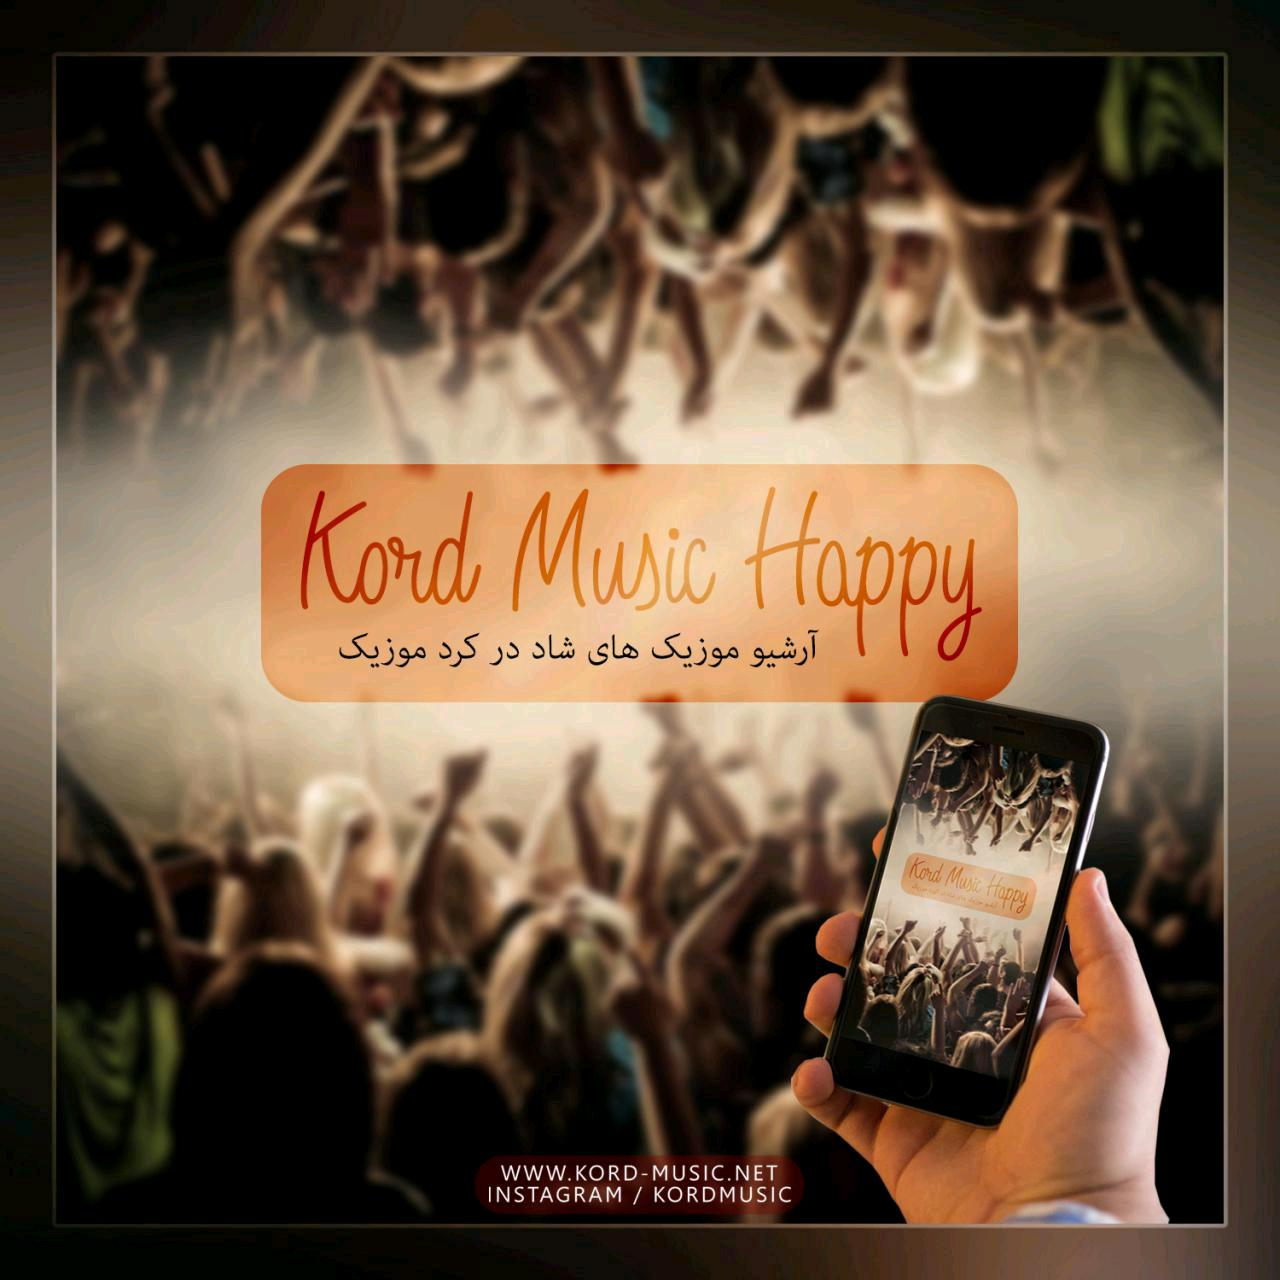 http://dl2.kord-music.net/1395/12/29/Kord%20Music%20Happy%20Cover.jpg